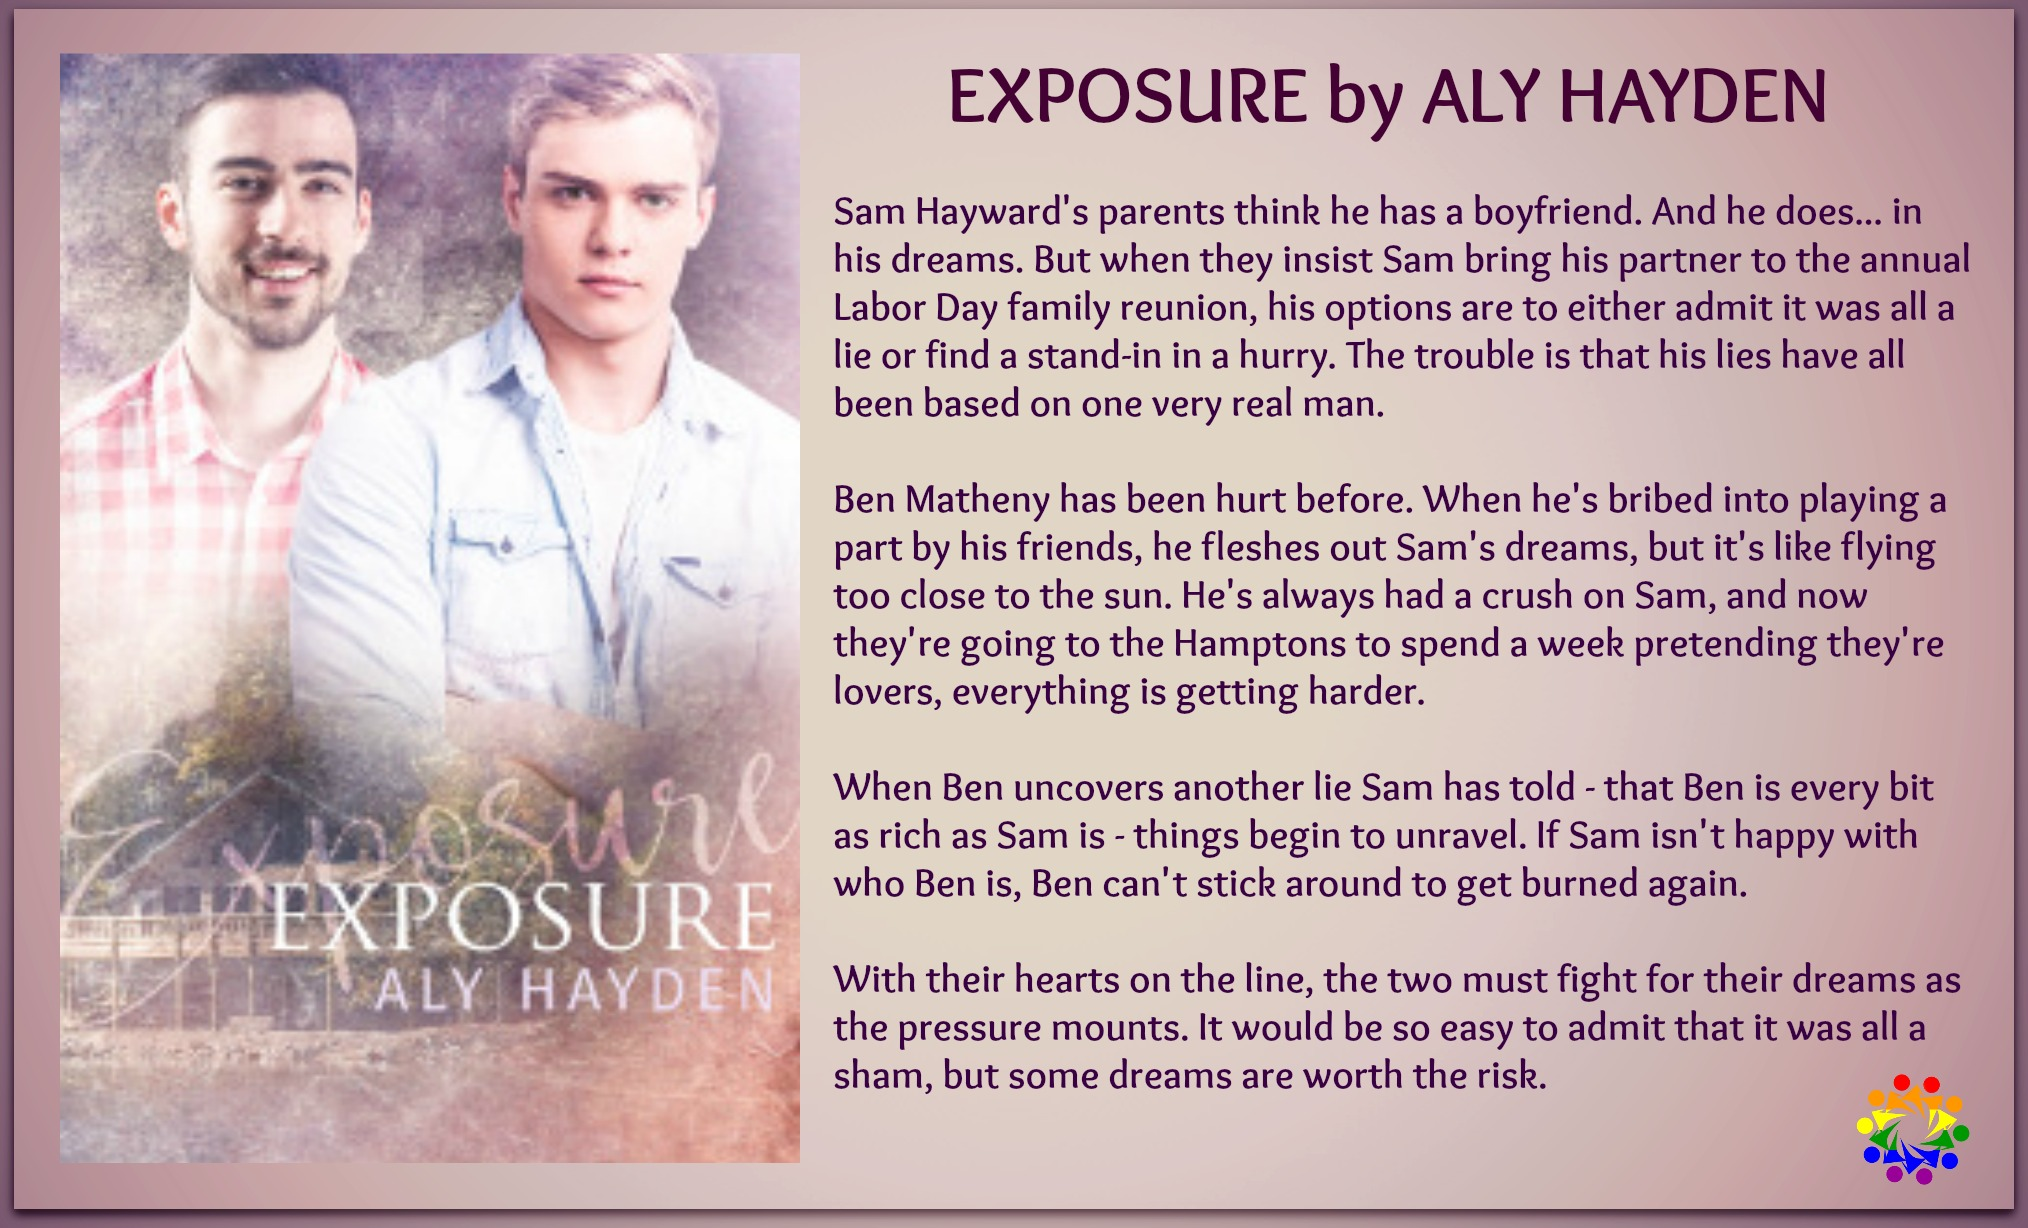 EXPOSURE BLURB